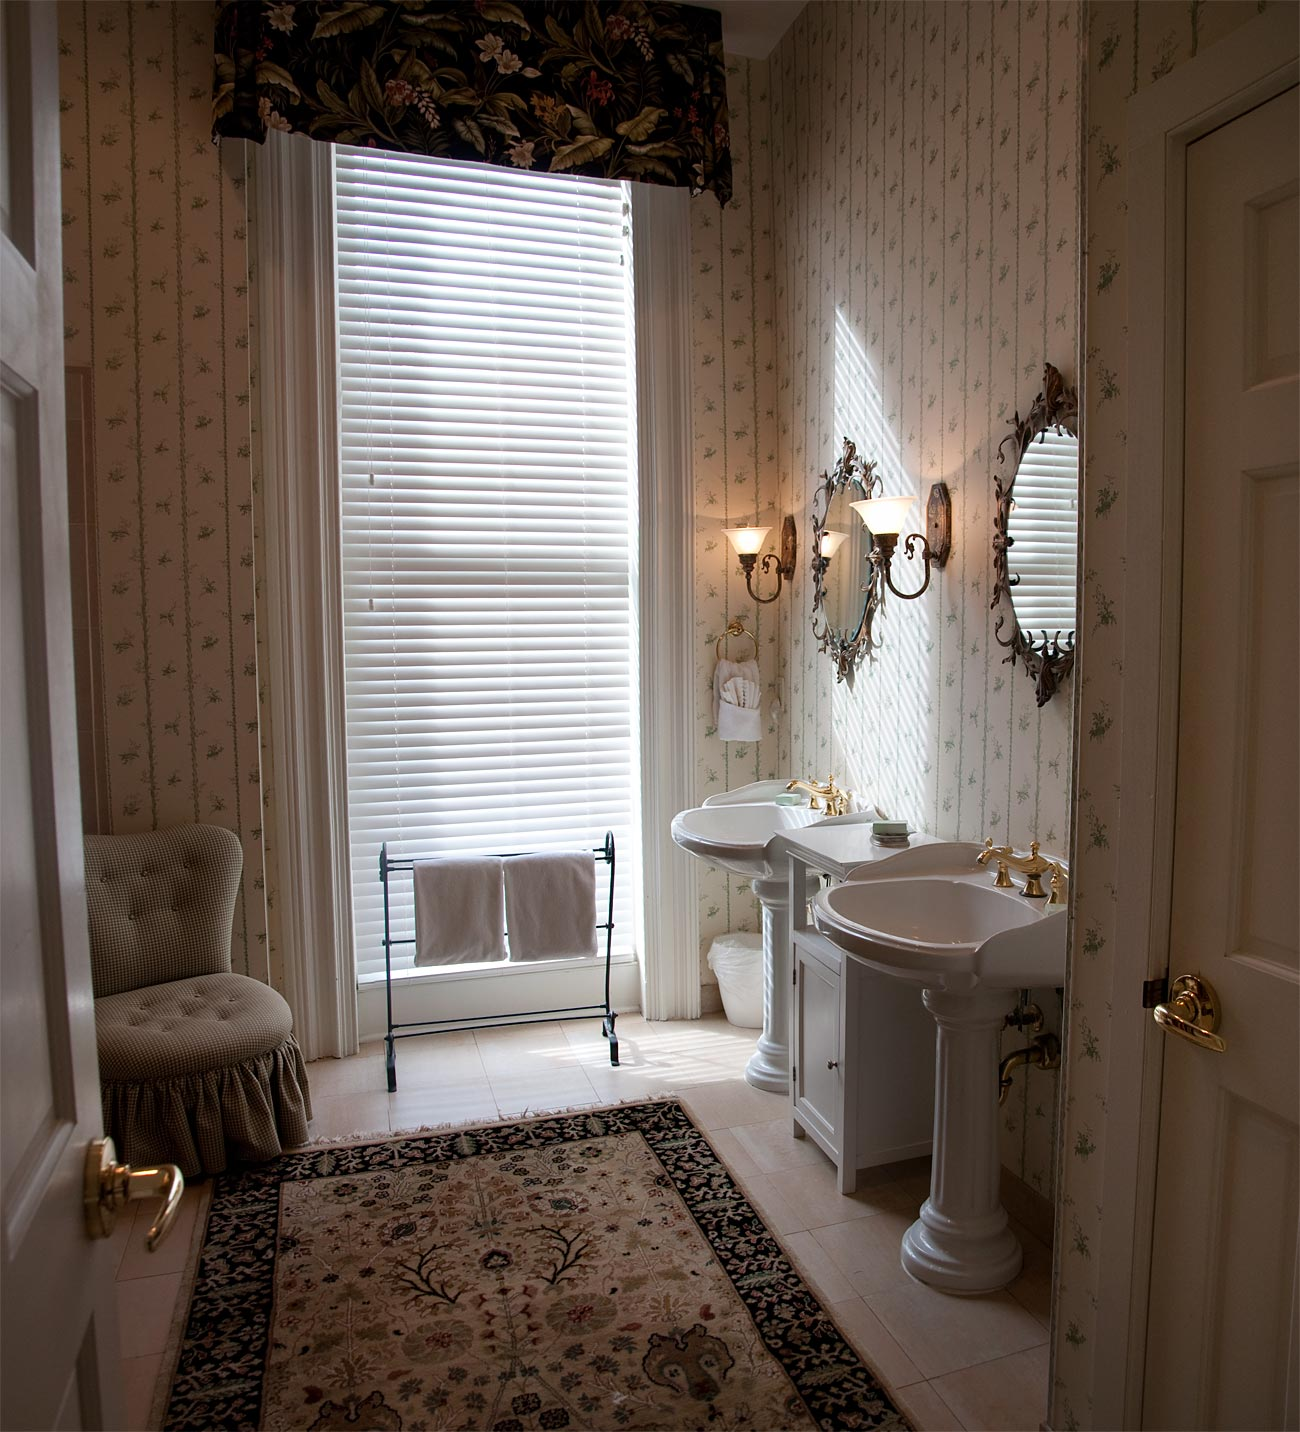 5 Small Bathroom Remodeling Ideas On A Budget